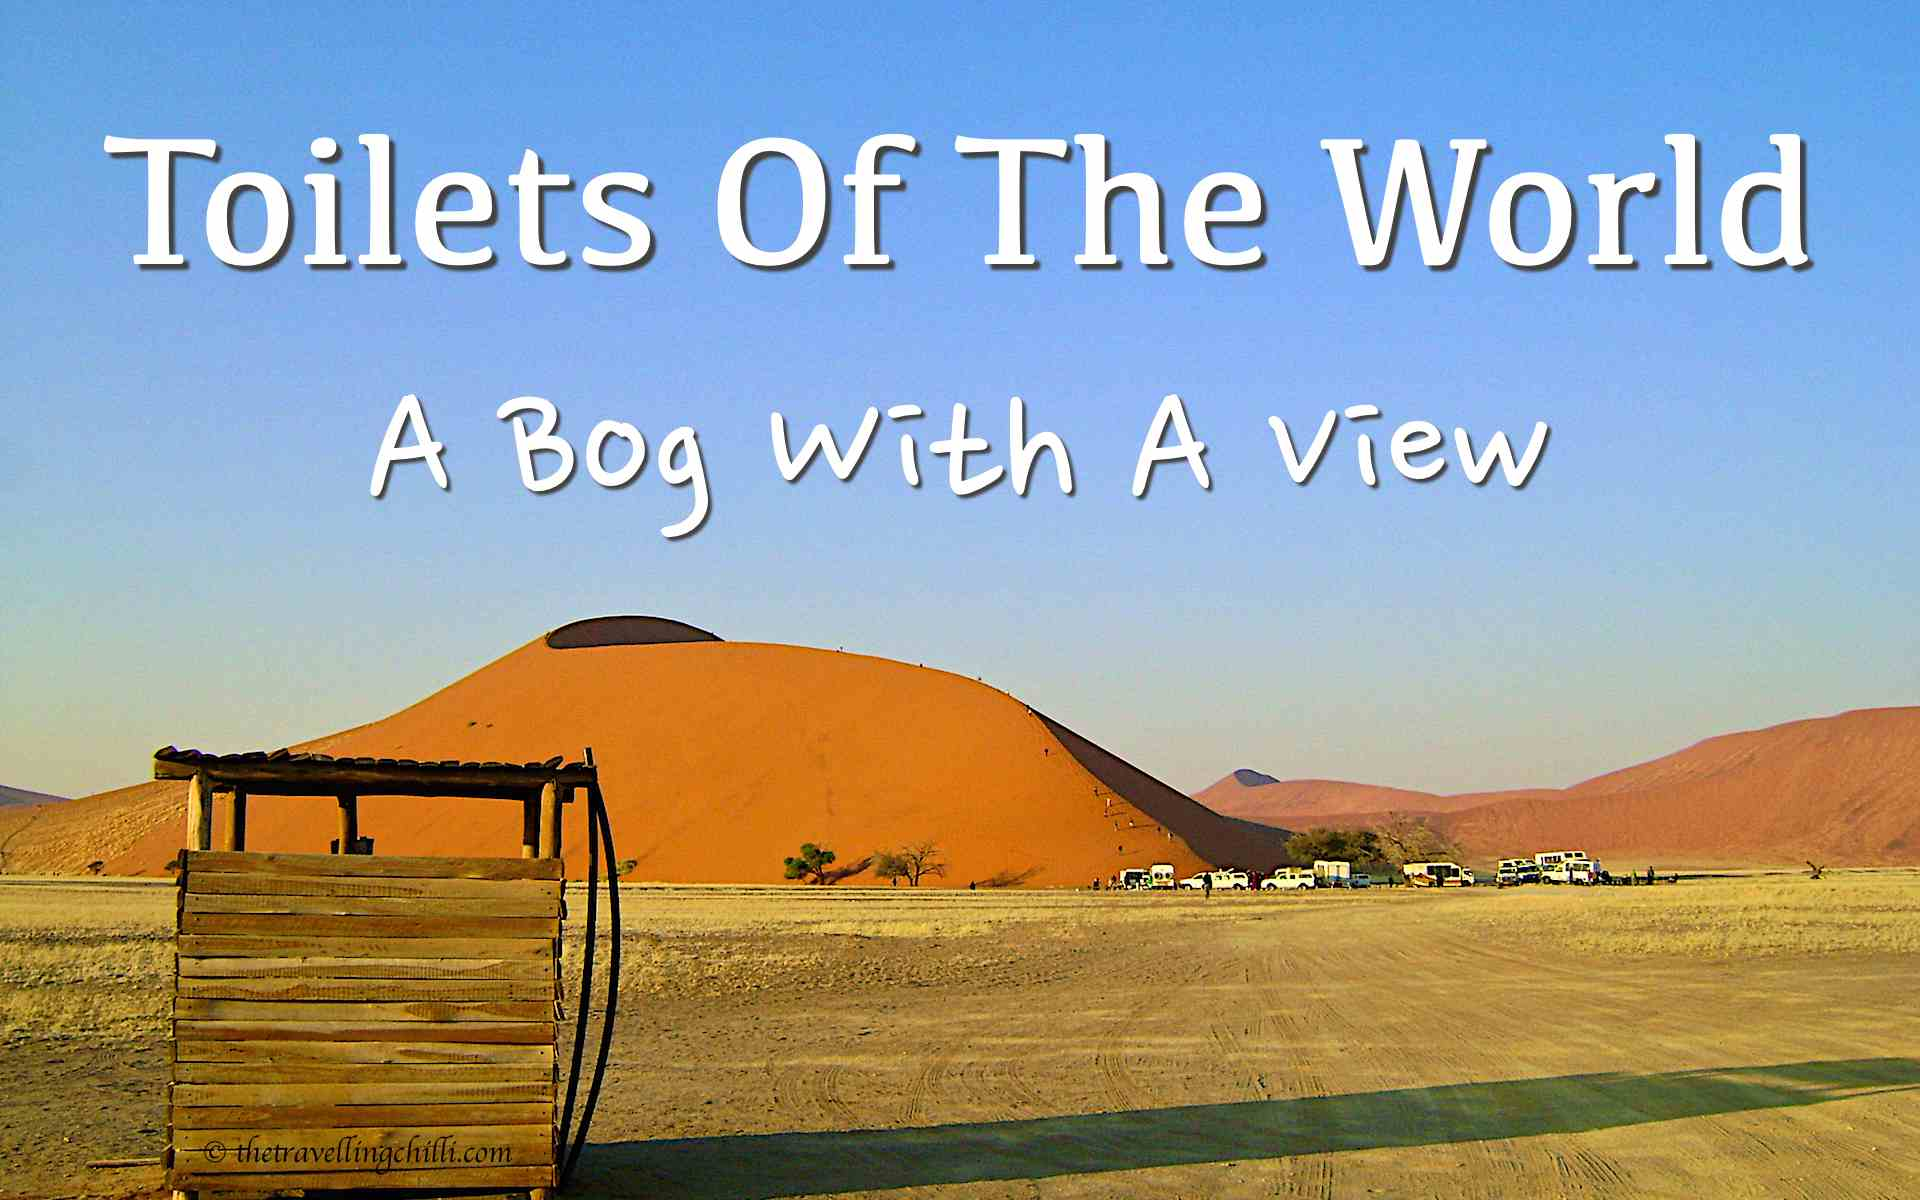 Toilets of the world - A bog with a view